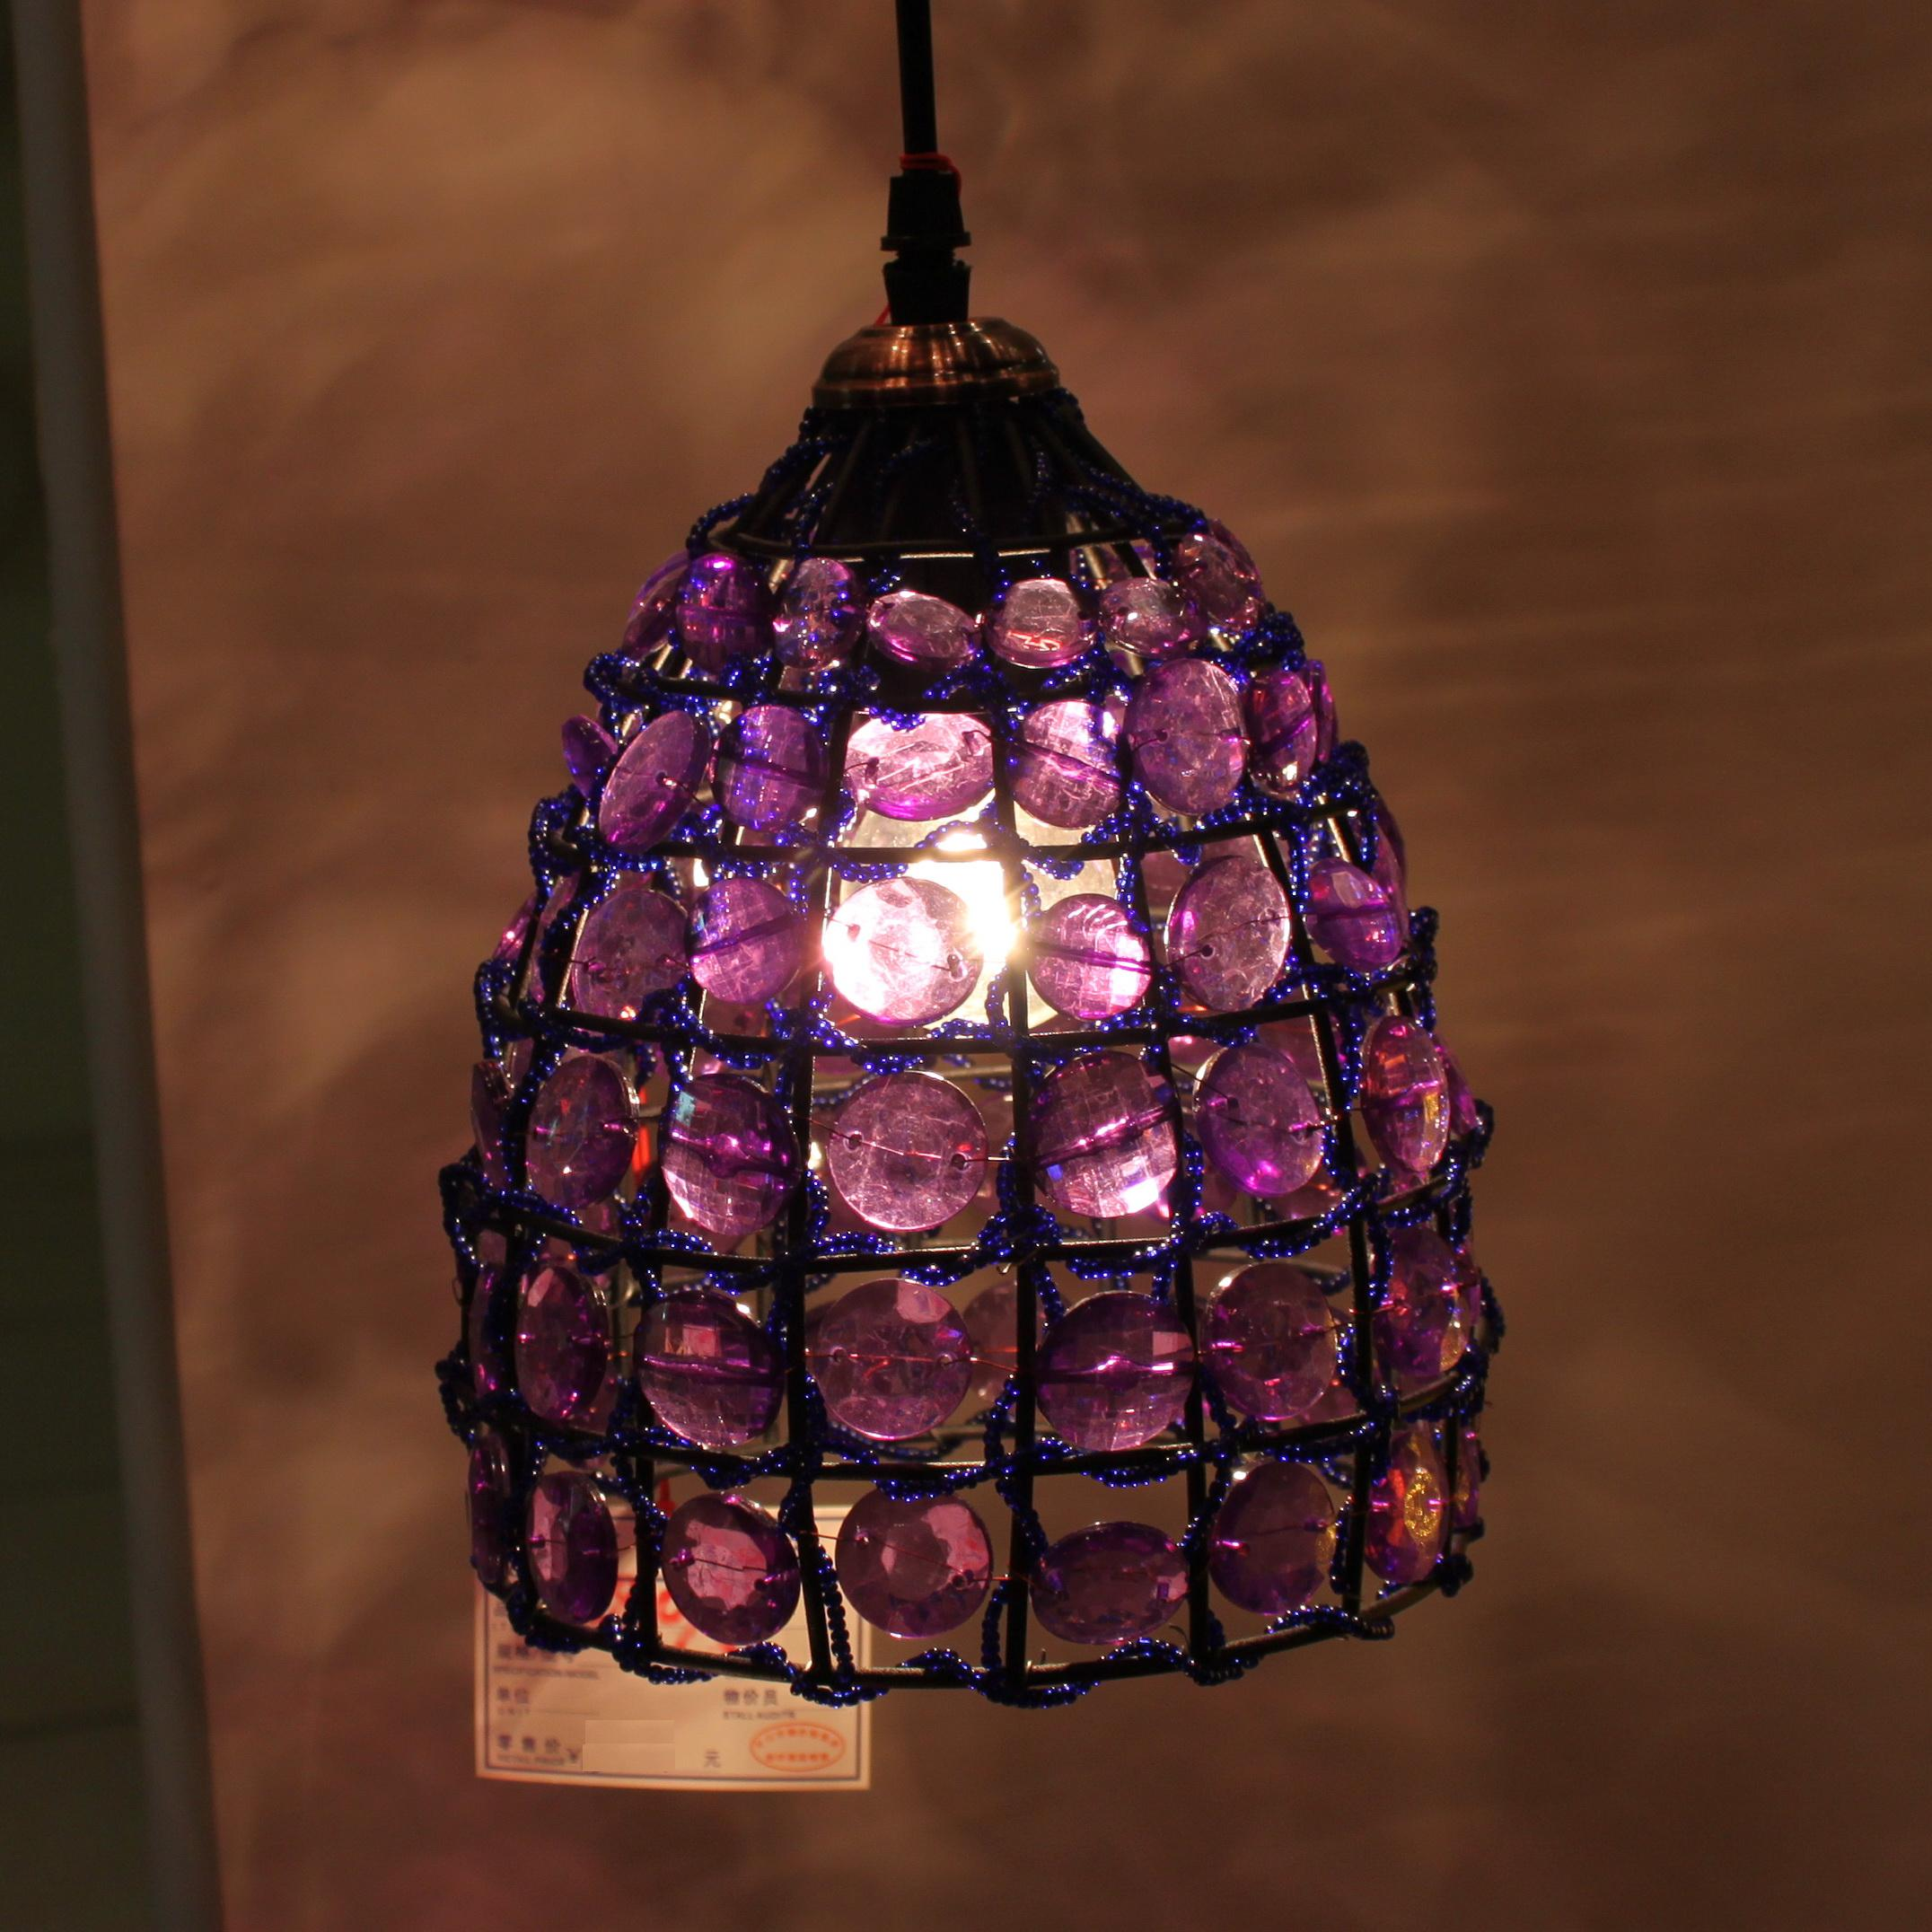 Small Lamp Shades For Chandeliers | HomesFeed